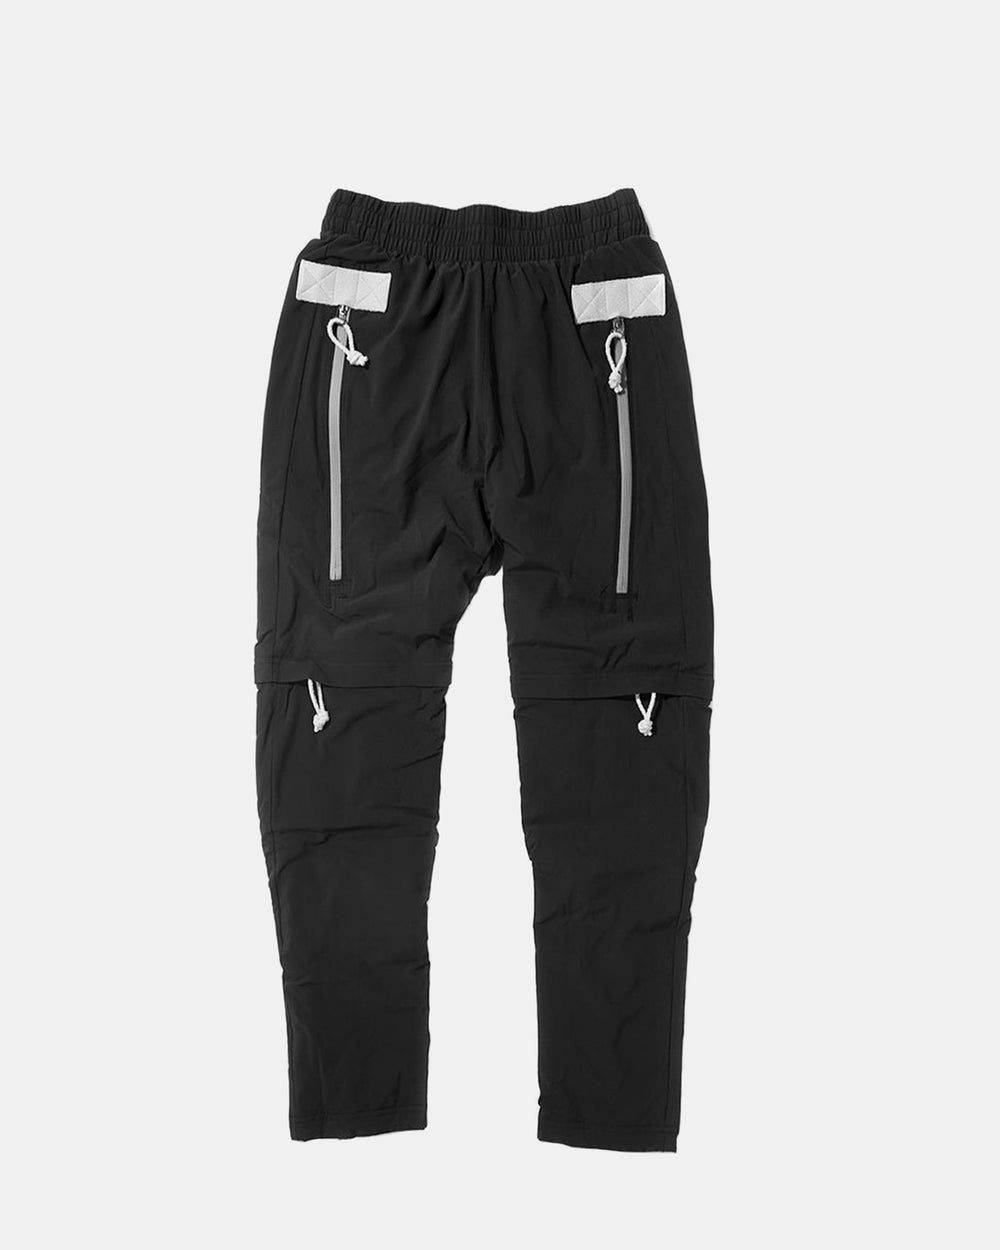 adidas Consortium - Day One Wind Pants (Black)